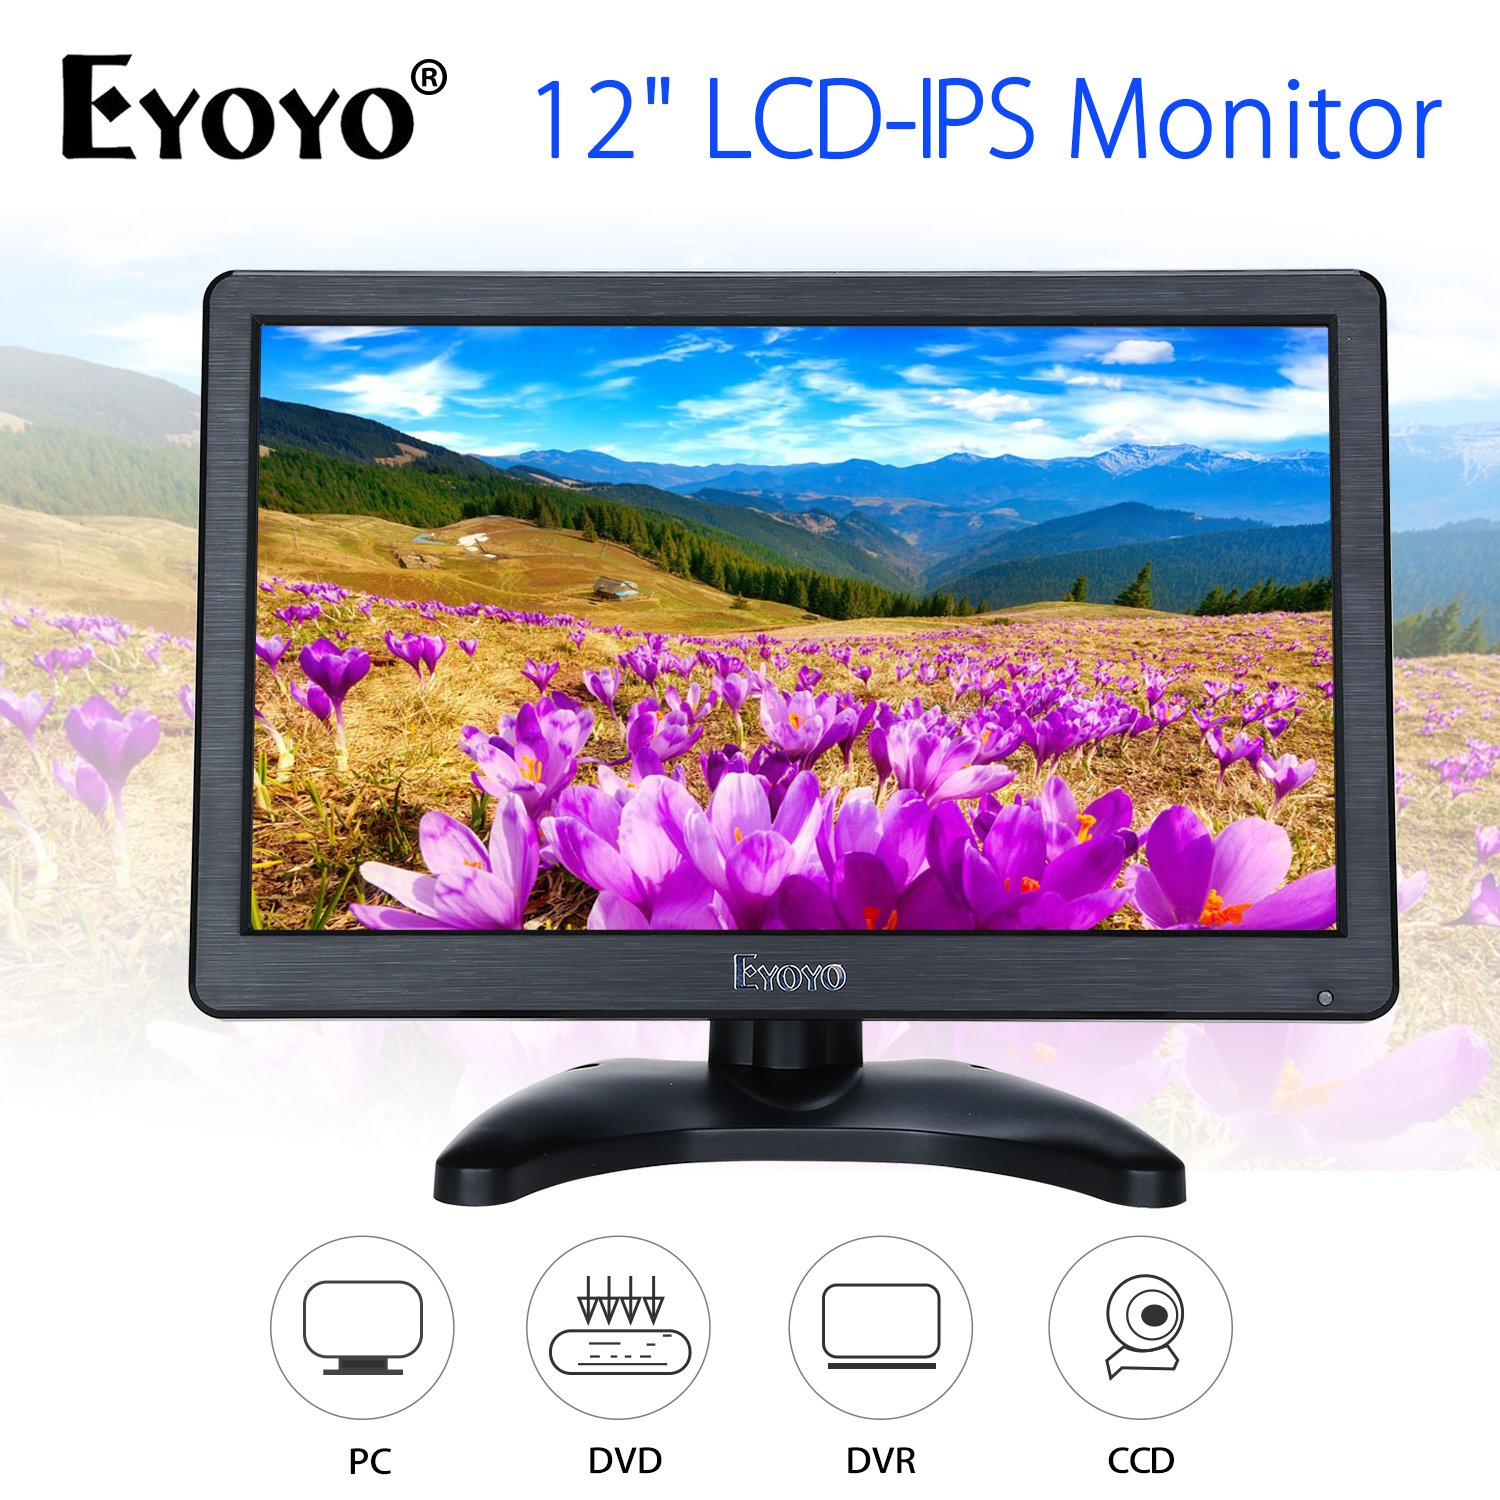 Eyoyo 12 inch HD 1920x1080 IPS LCD HDMI Monitor Screen Input Audio Video Display with BNC Cable for PC Computer Camera DVD Security CCTV DVR Home Office Surveillance by Eyoyo (Image #9)